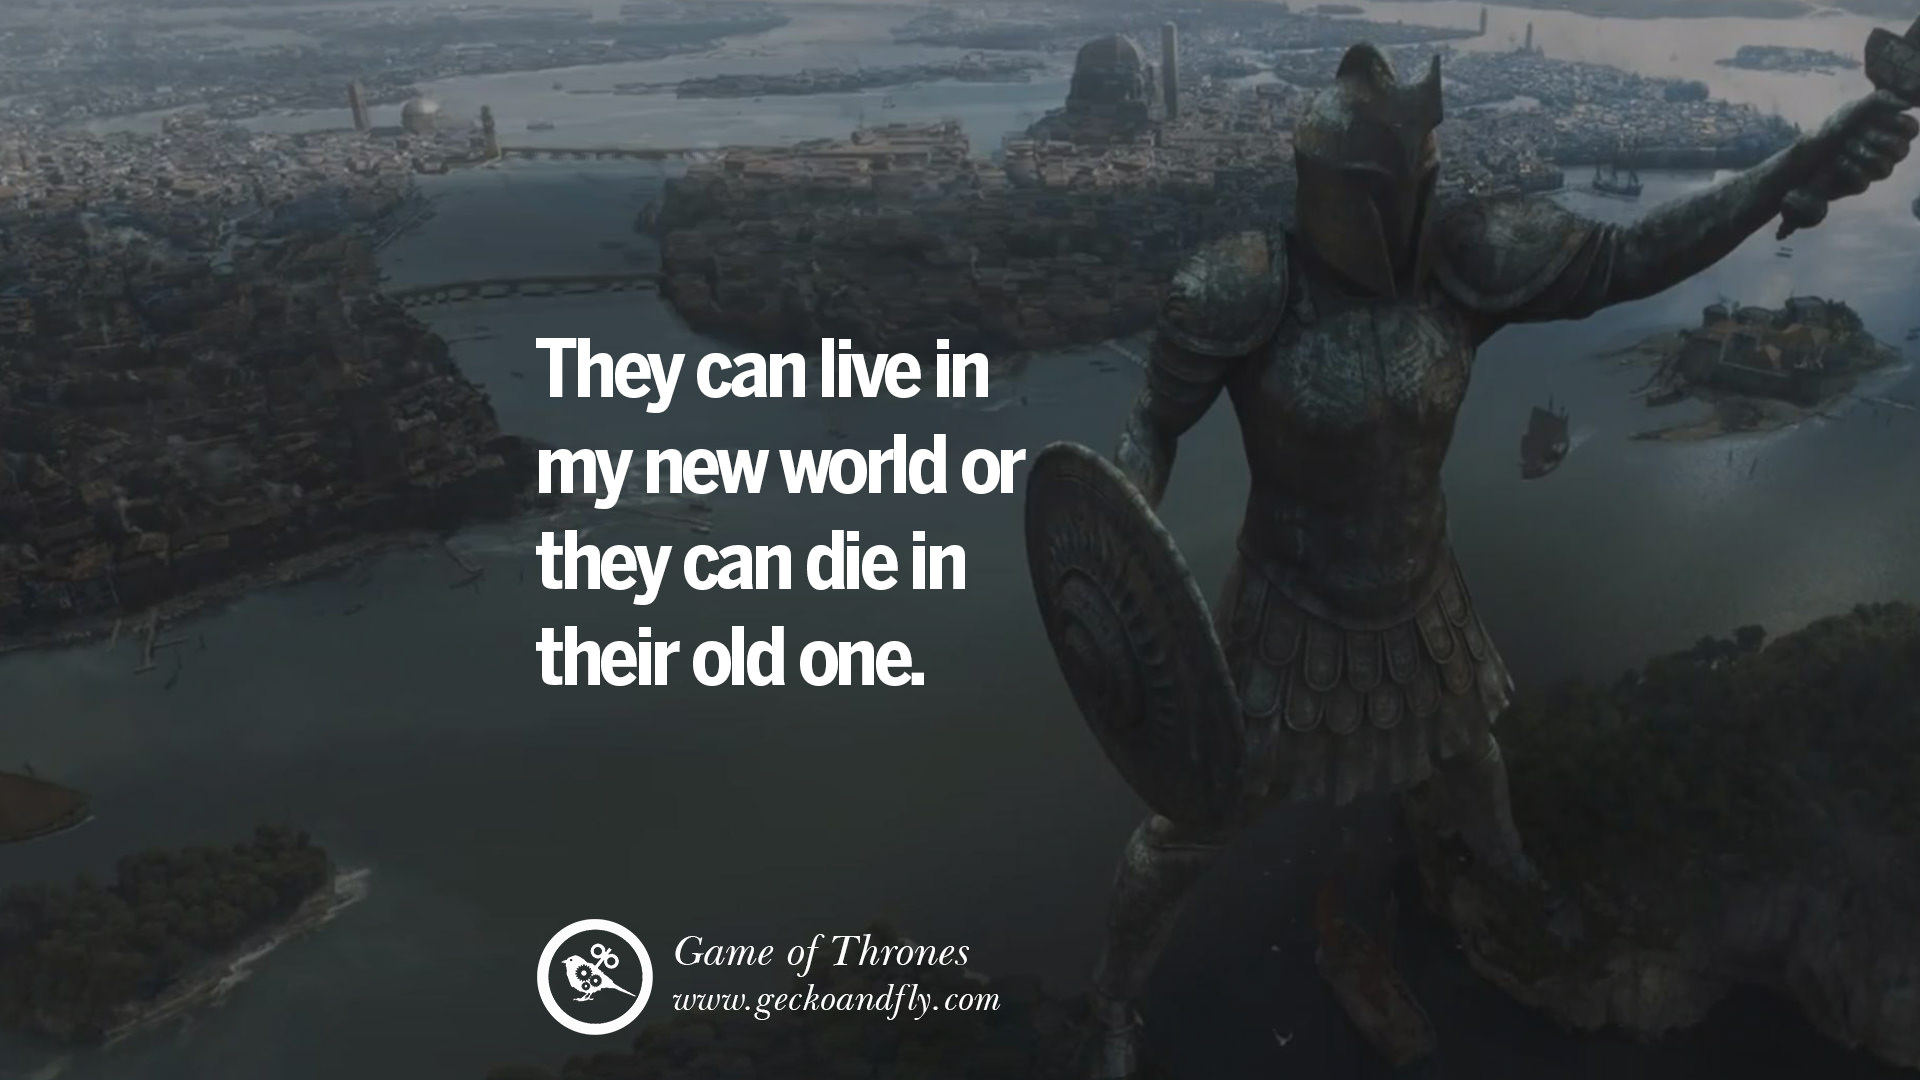 Love Quotes Game Of Thrones: 15 Memorable Game Of Thrones Quotes By George Martin On